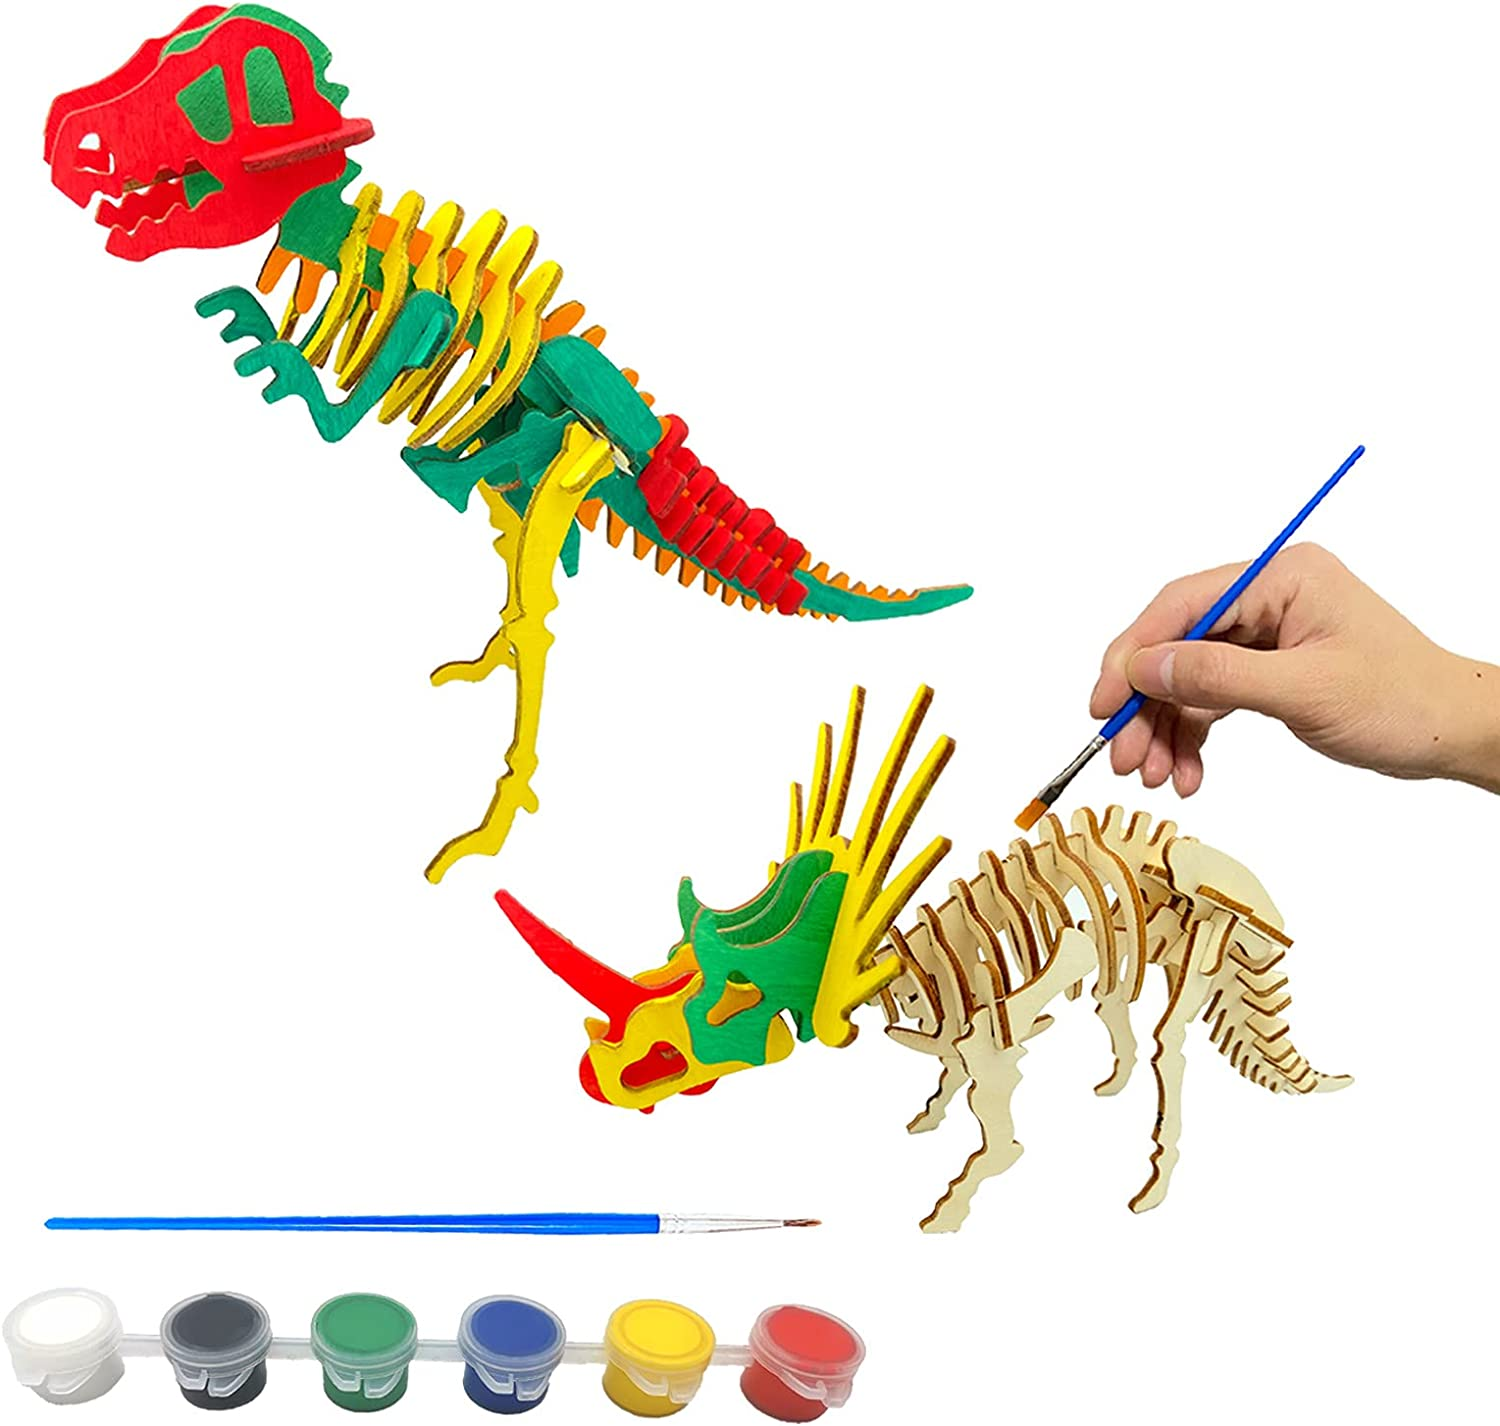 2pc 3D Dinosaur Puzzle Crafts Painting Toys Set 2pc DIY Wooden Dinosaur Skeleton Model Puzzle for Kids Educational Toys Boy Girl Adults Gifts